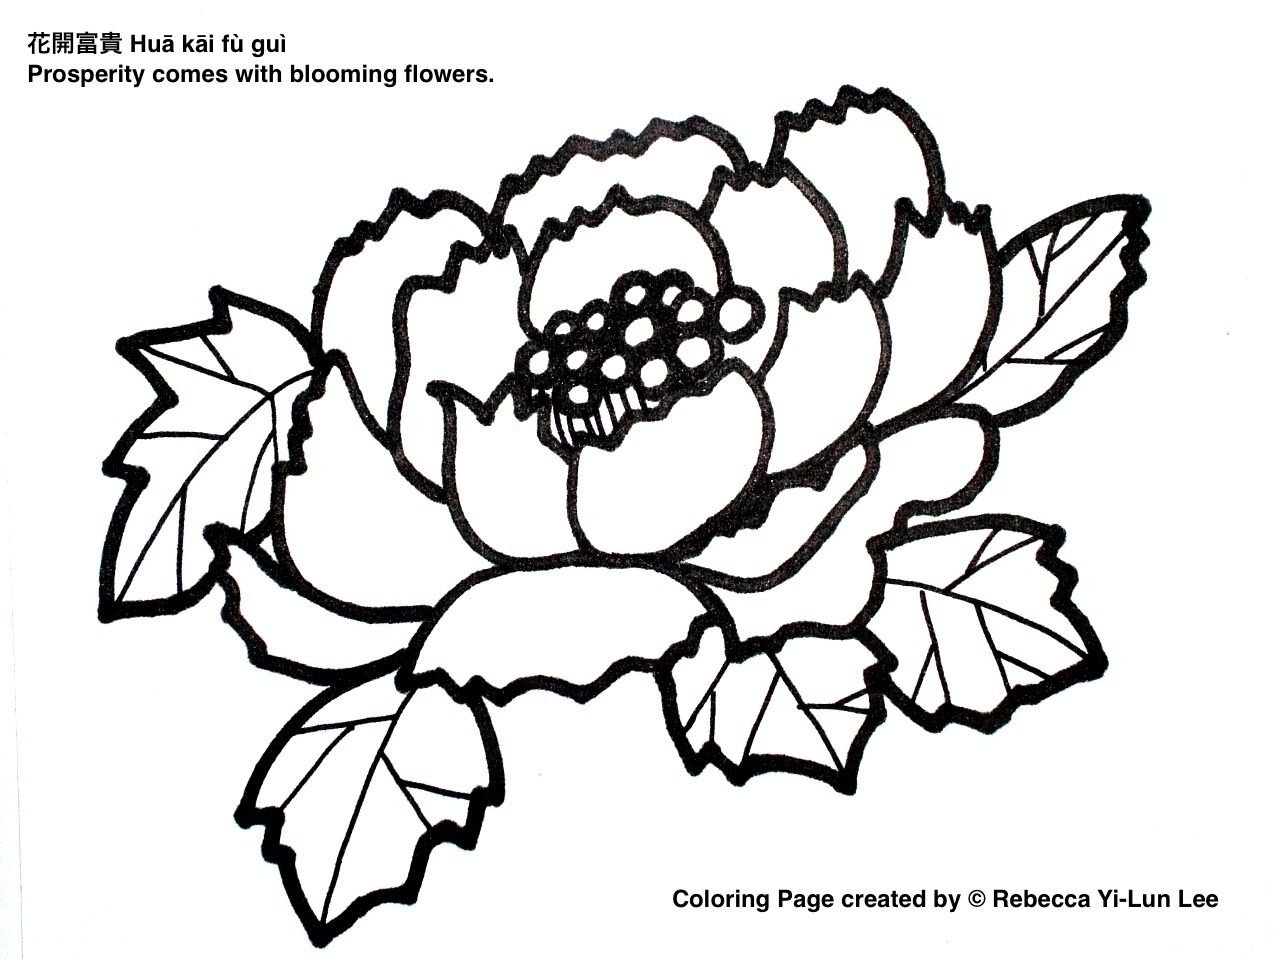 Miss Panda Chinese Chinese New Year Coloring Page Prosperity With Blooming Flower